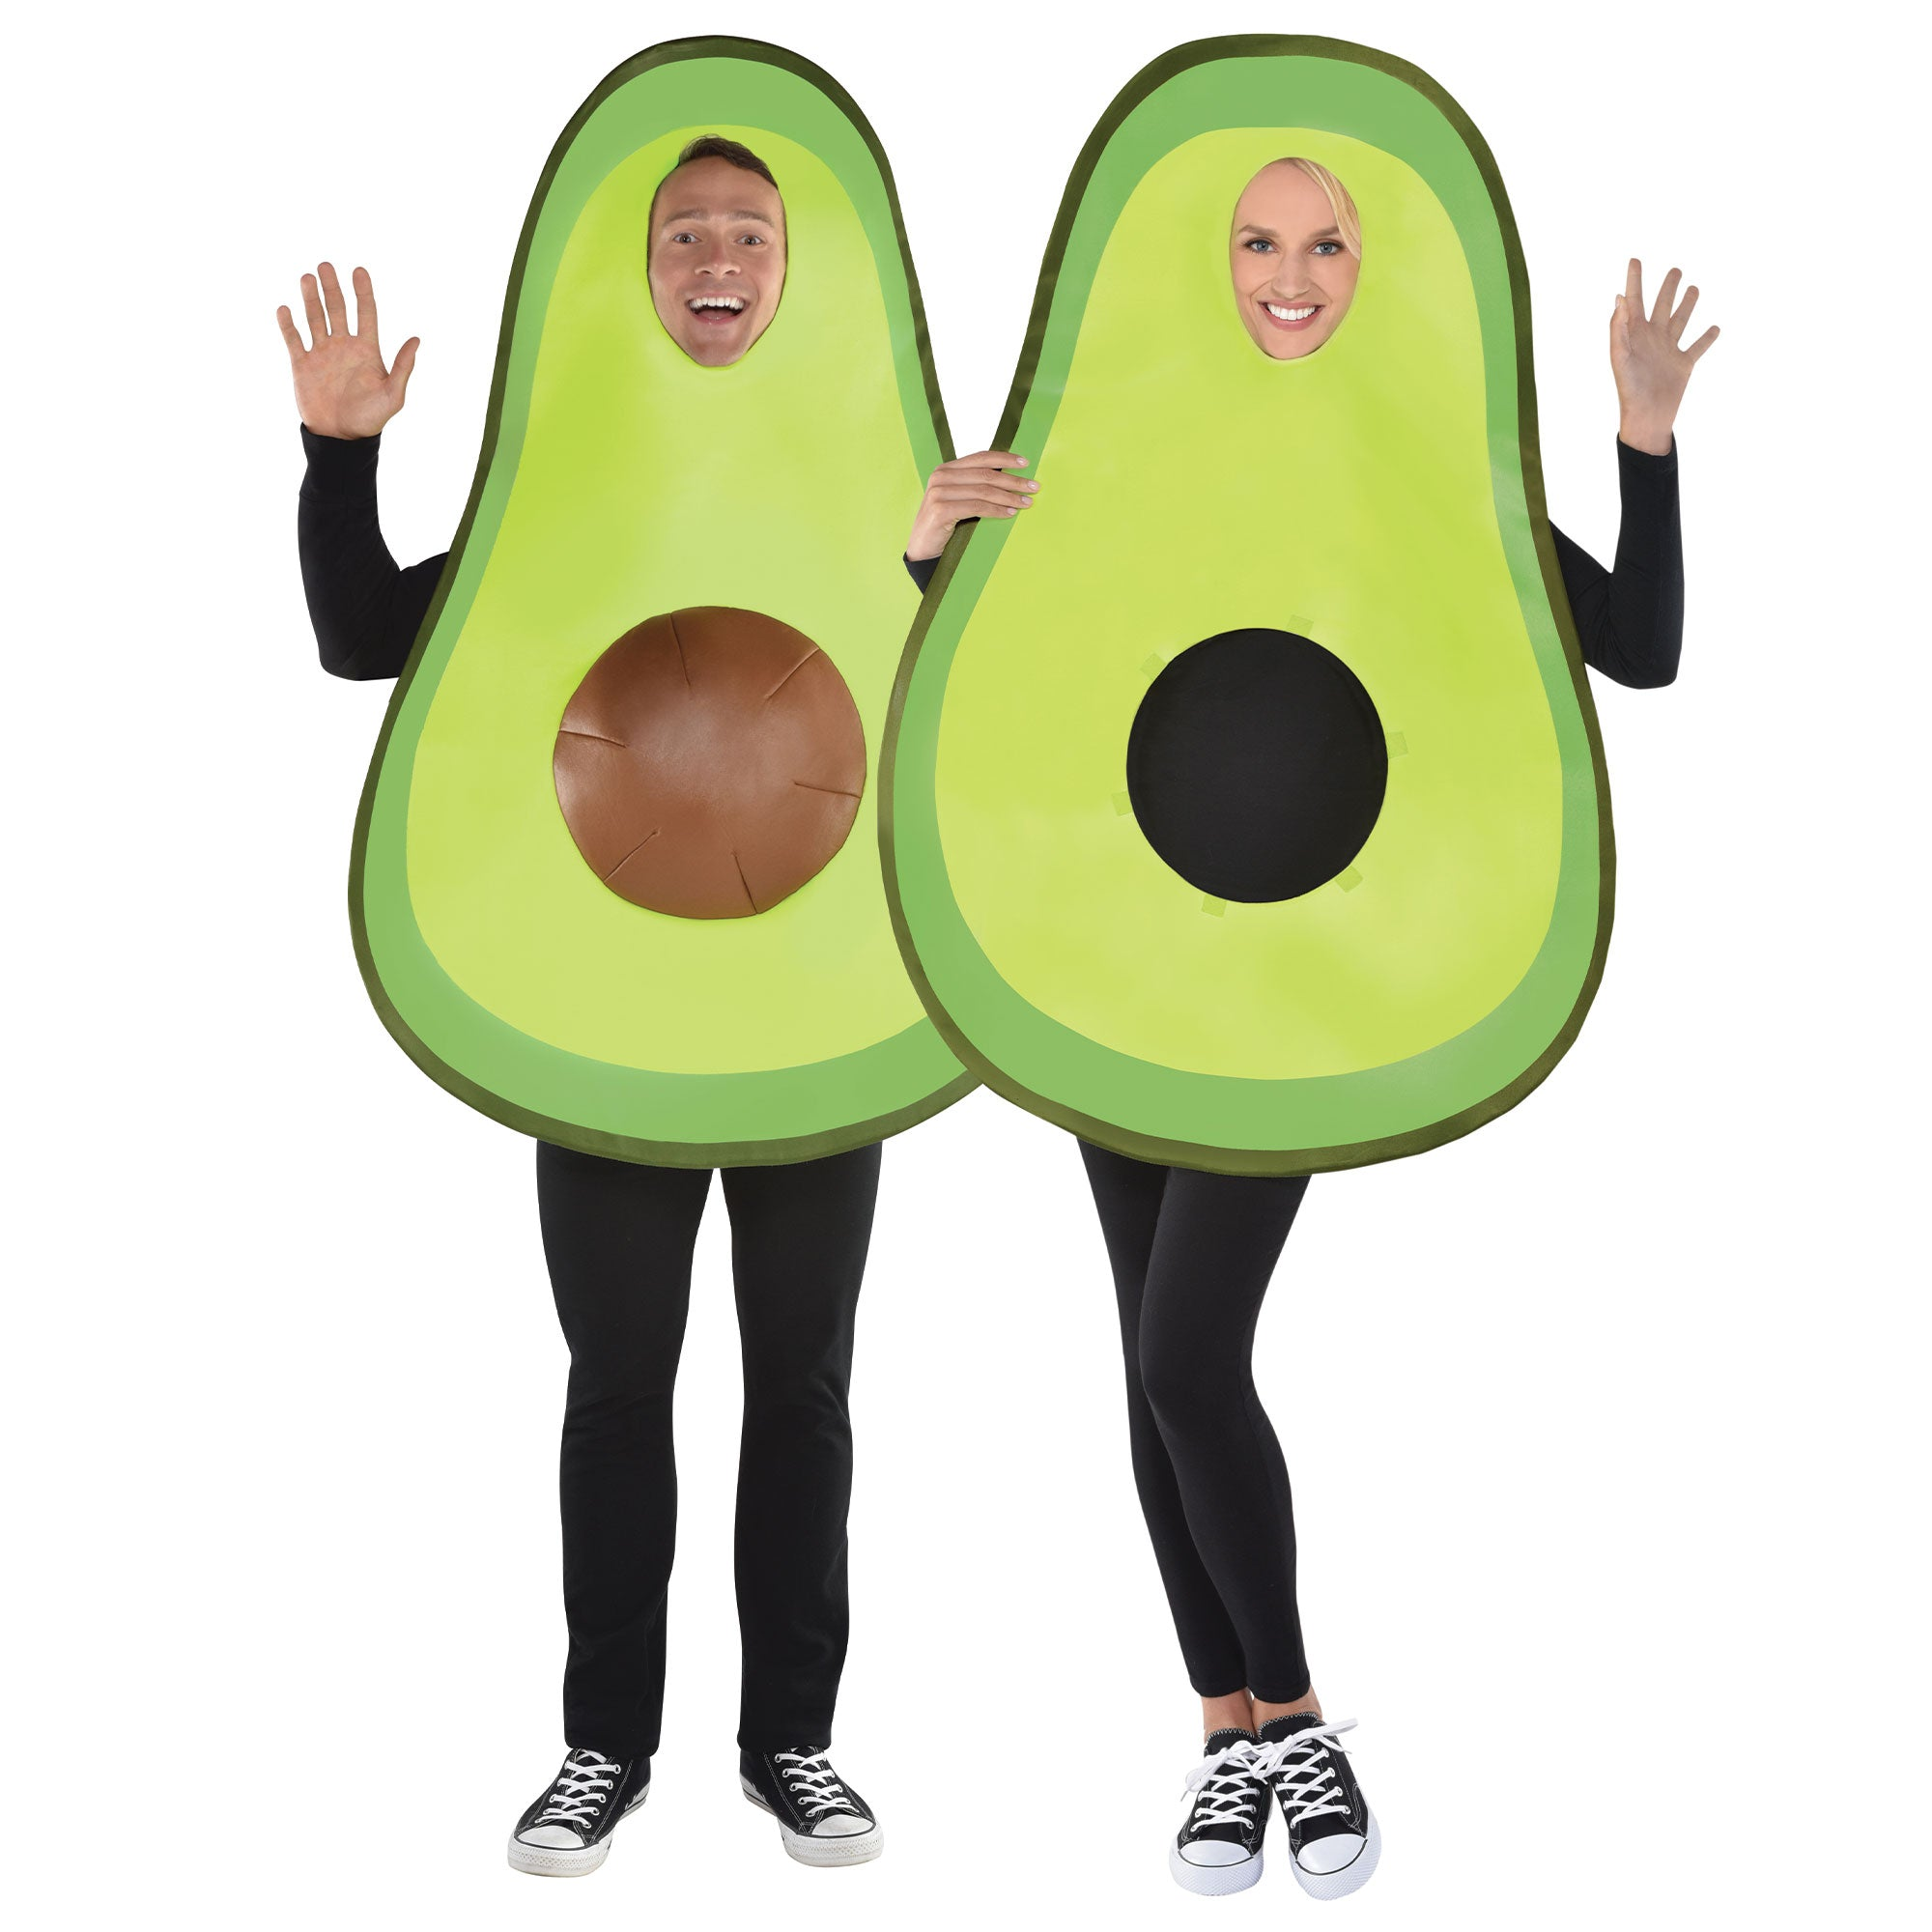 Fiesta Avocado Costumes Adult Size - Party Savers